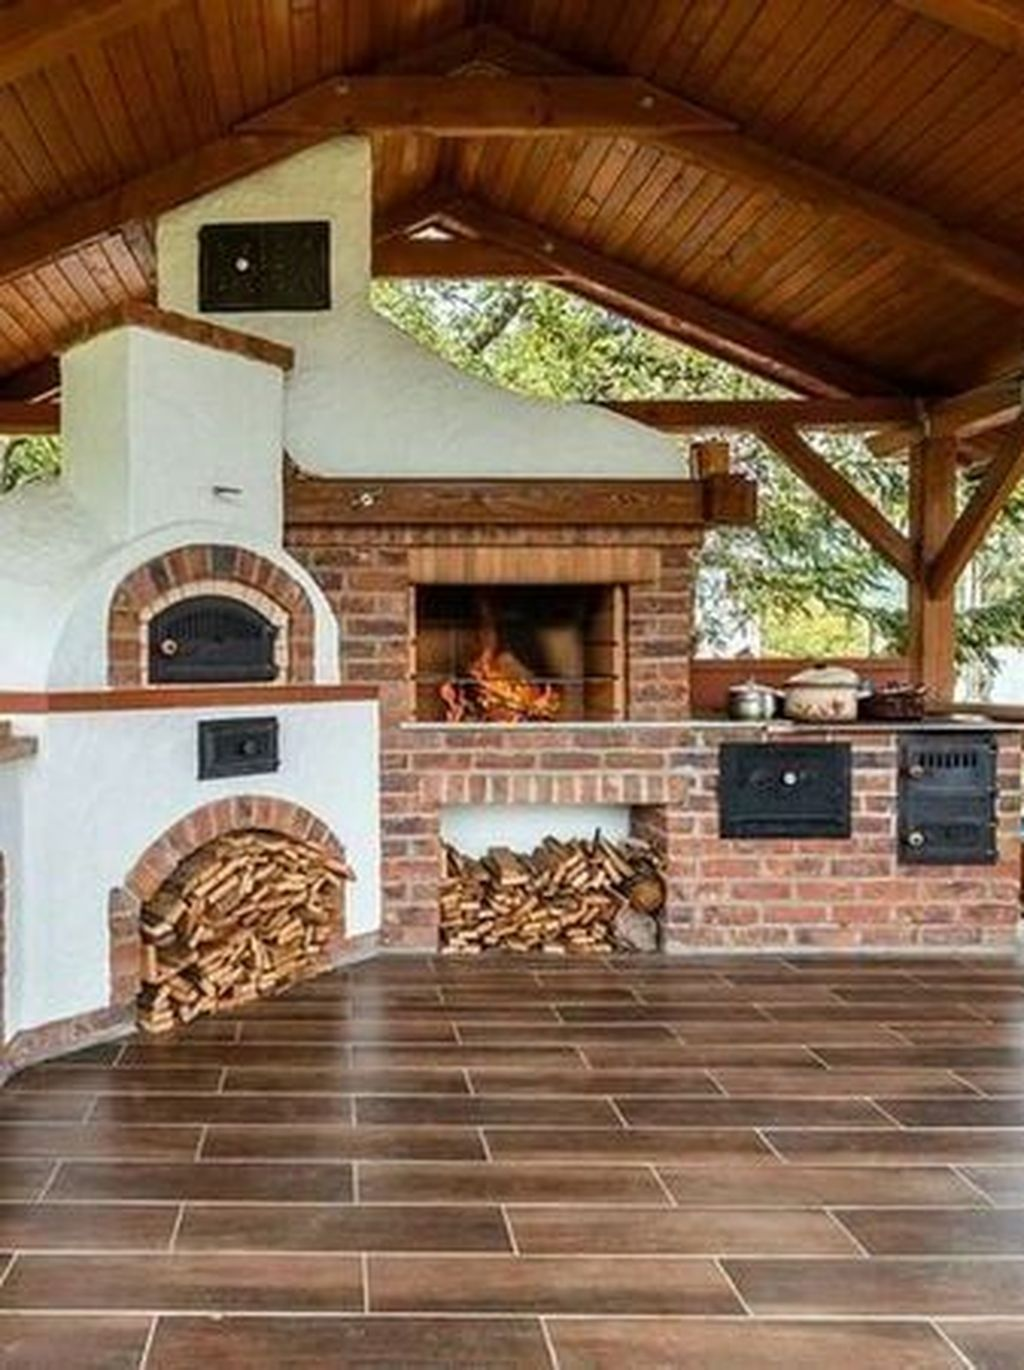 35 Fancy Outdoor Kitchens Design Ideas That You Need To Know In 2020 Outdoor Kitchen Design Outdoor Kitchen Design Layout Diy Outdoor Kitchen